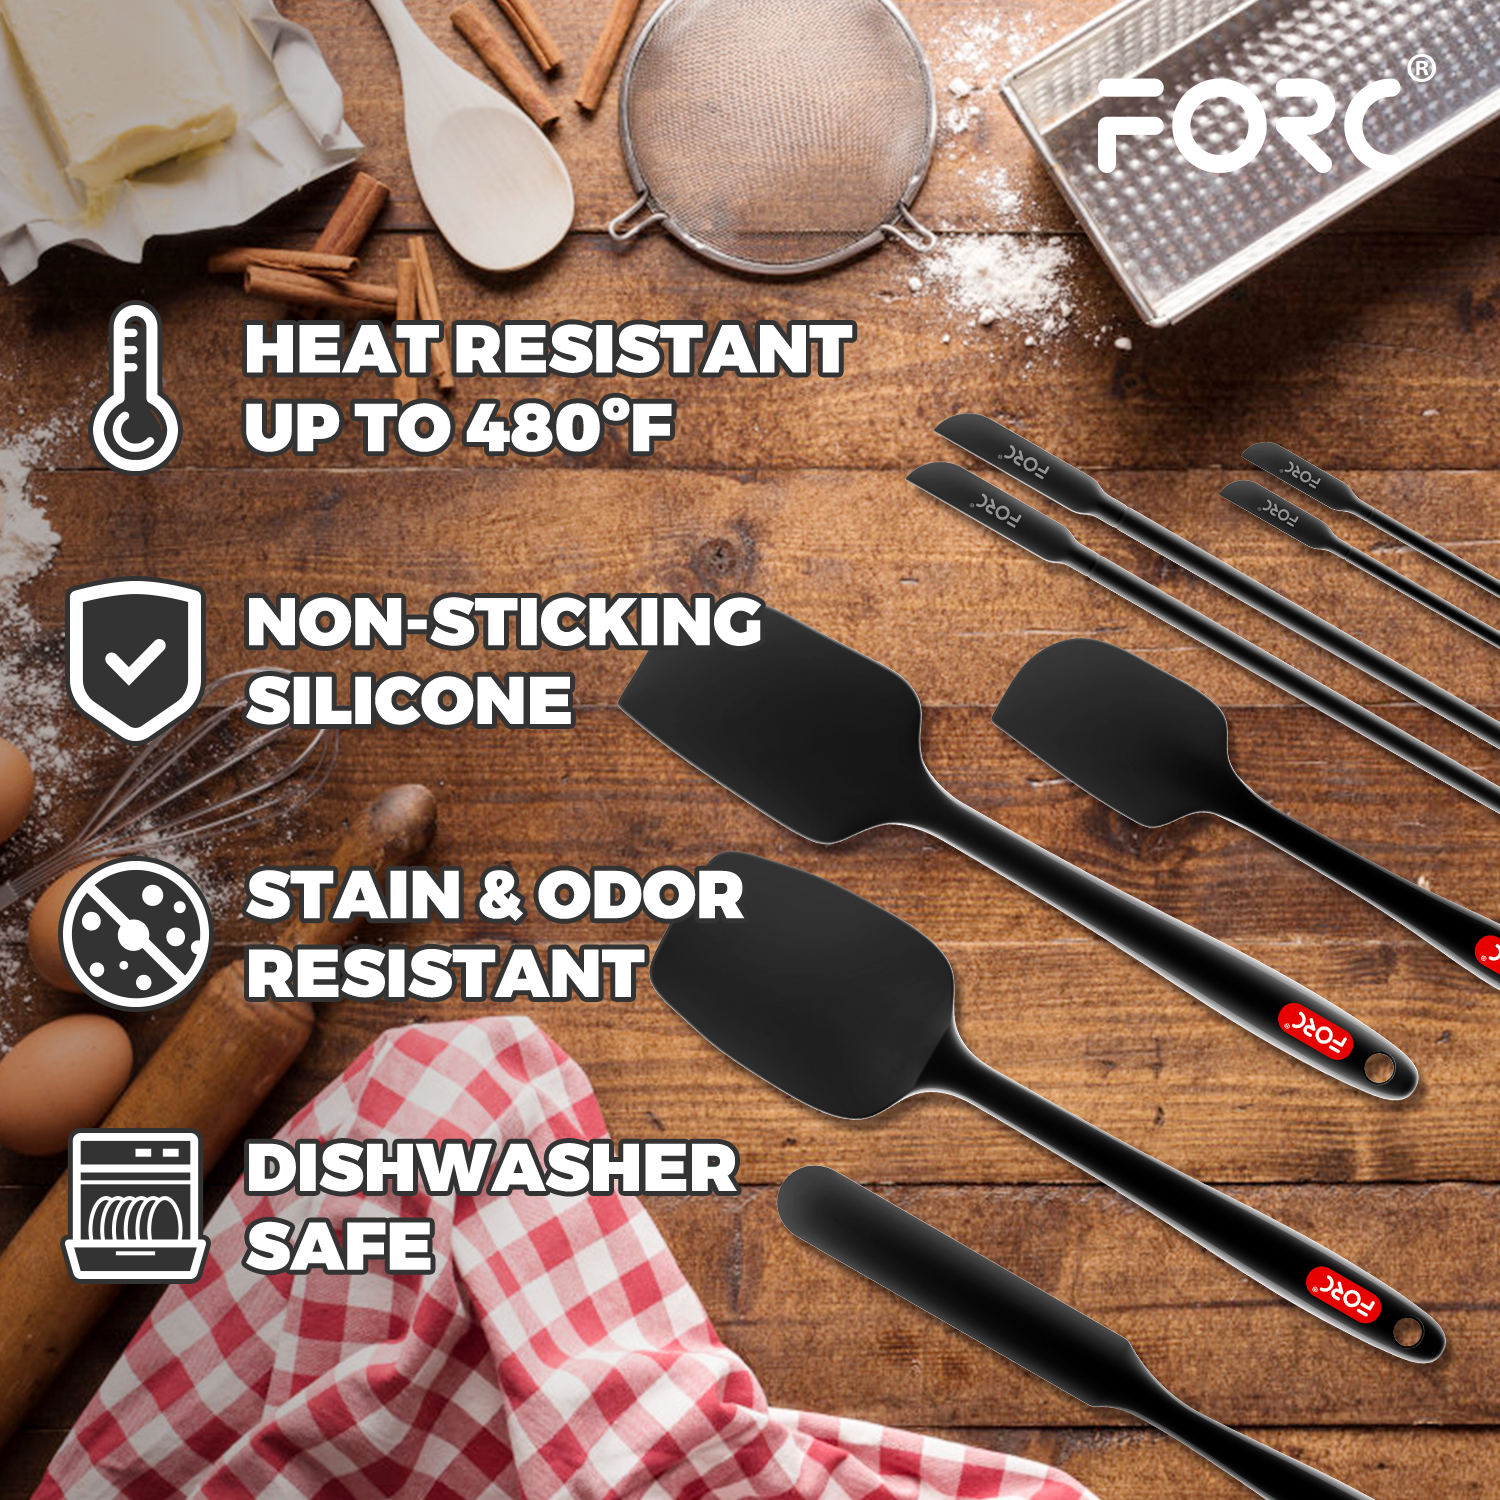 Forc Silicone Spatula Set of 8 include 4 Mini Spatulas, Heat Resistant Rubber Spatula Kitchen Utensils, One Piece Design with Stainless Steel Core, Kitchen Spatulas for Nonstick Cookware, Black